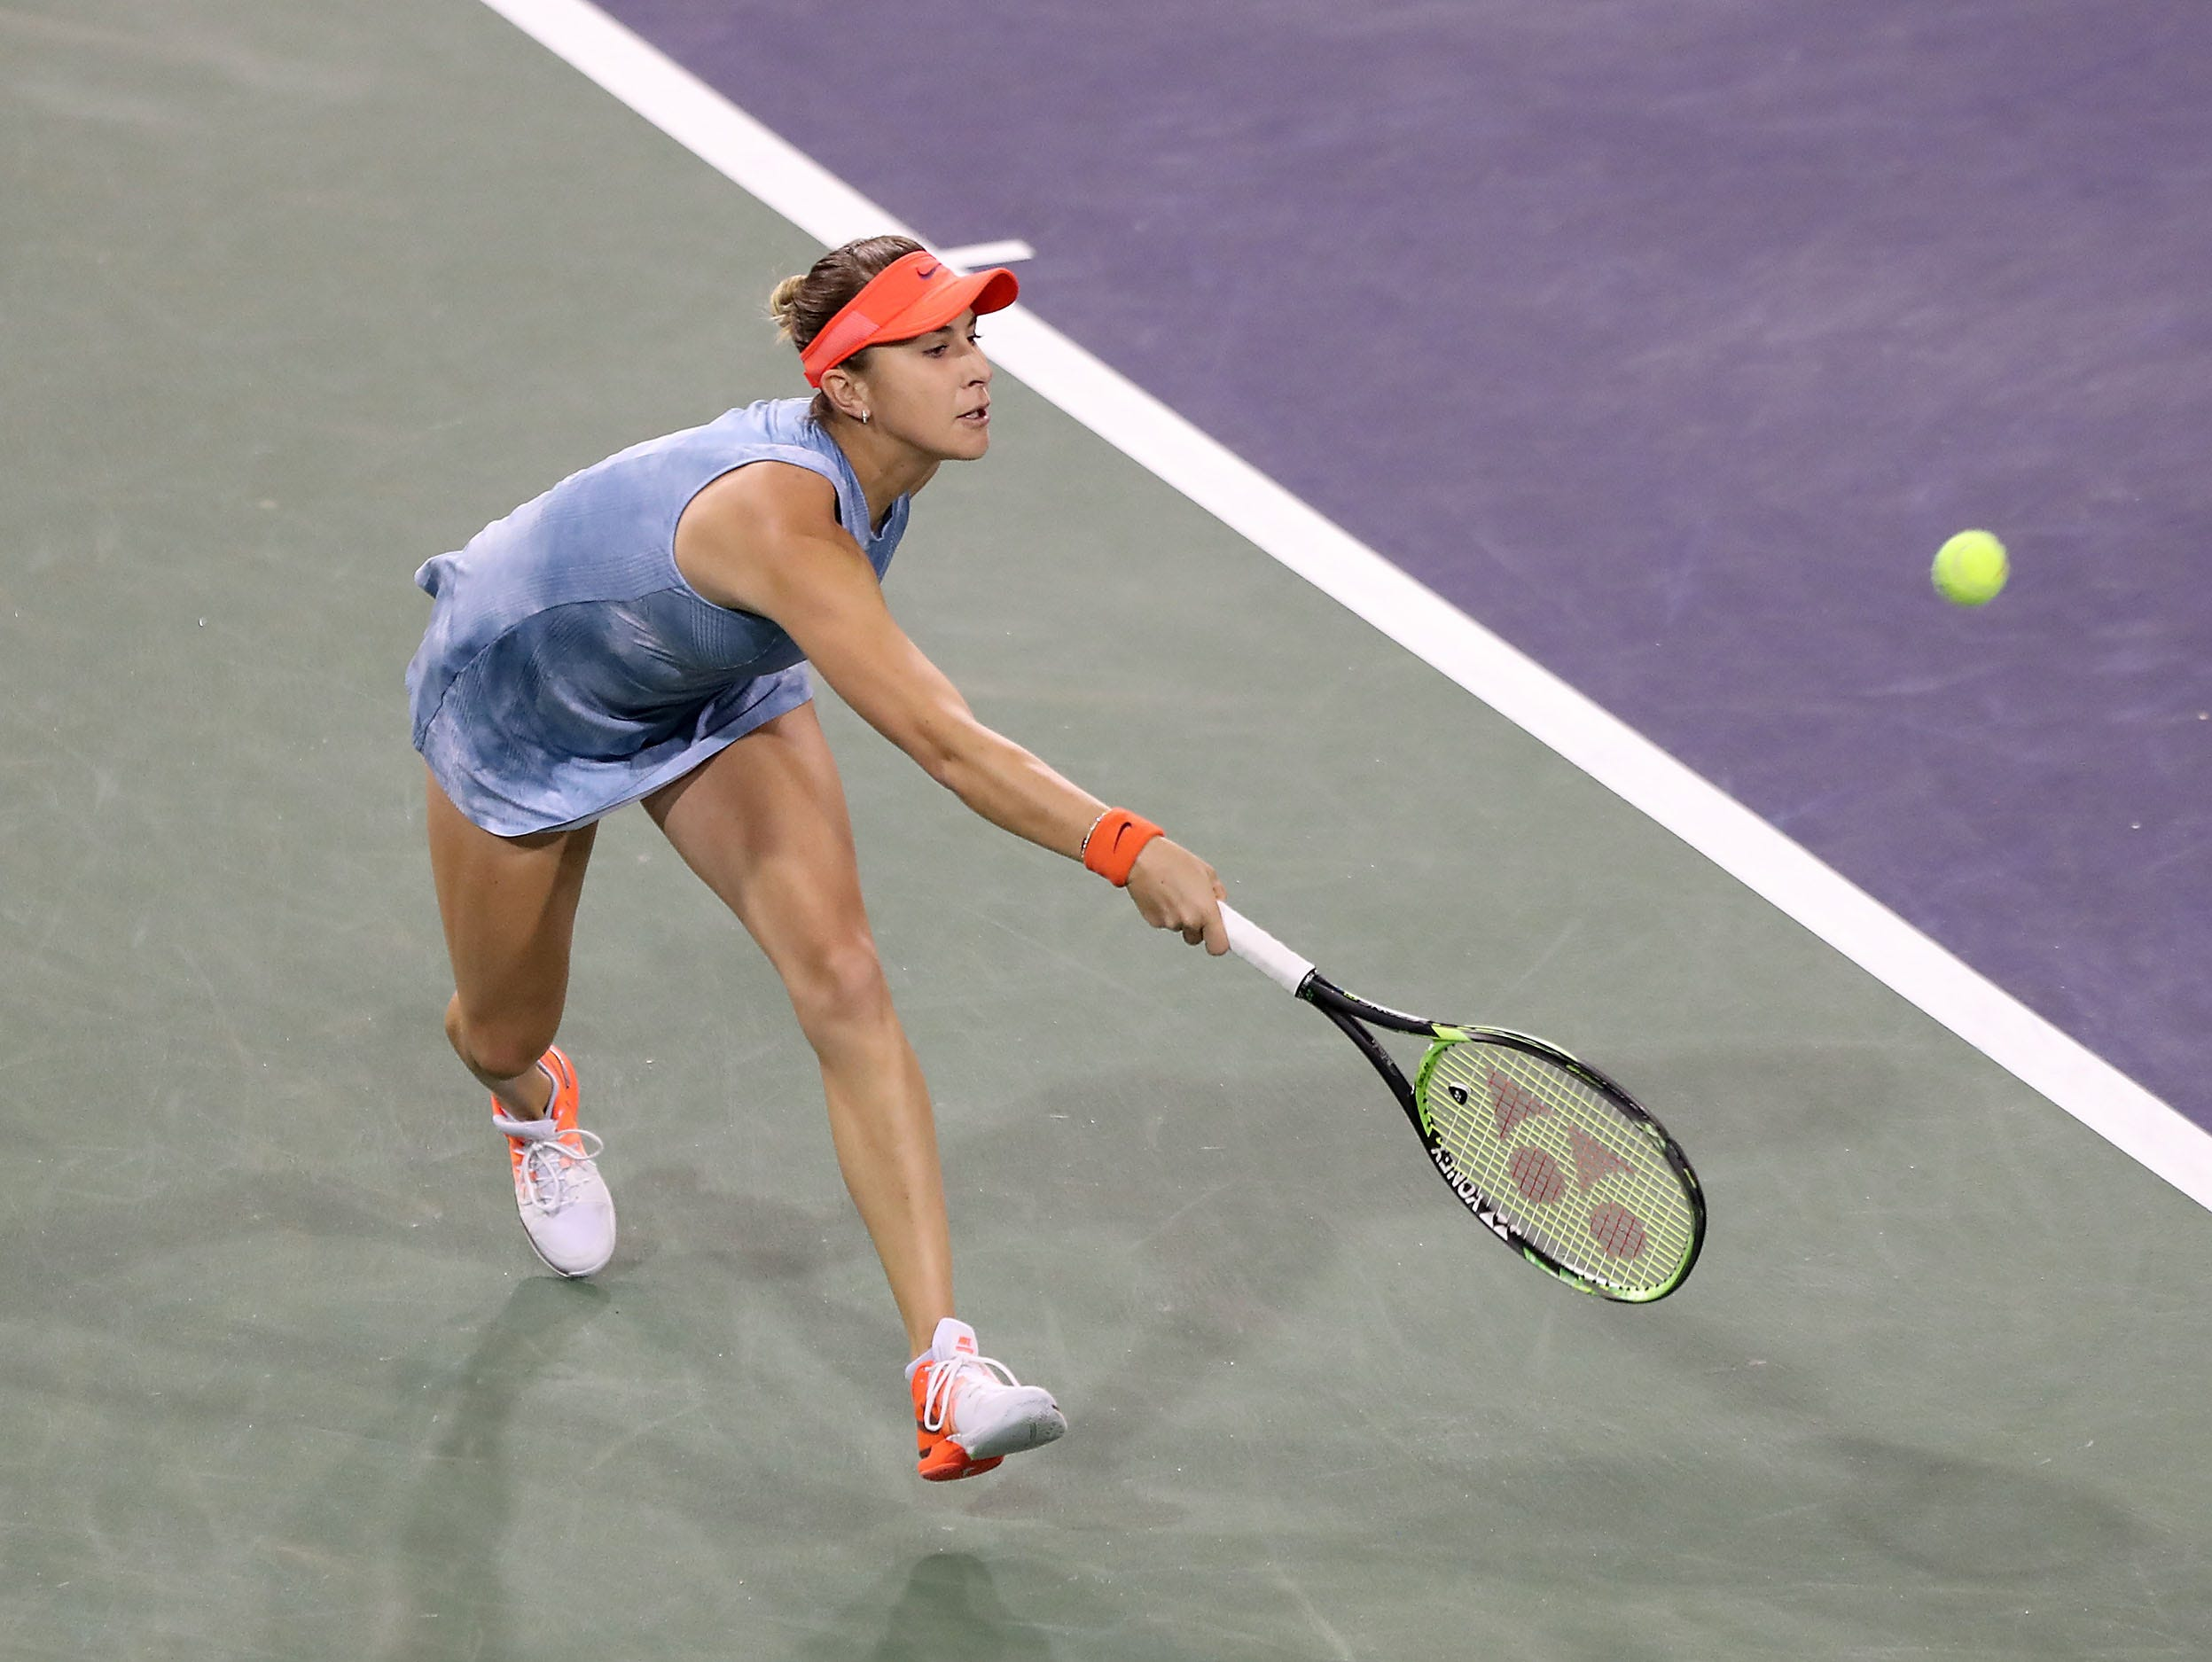 Belinda Bencic reaches for a shot during the semifinal match at the BNP Paribas Open in Indian Wells, March 15, 2019.